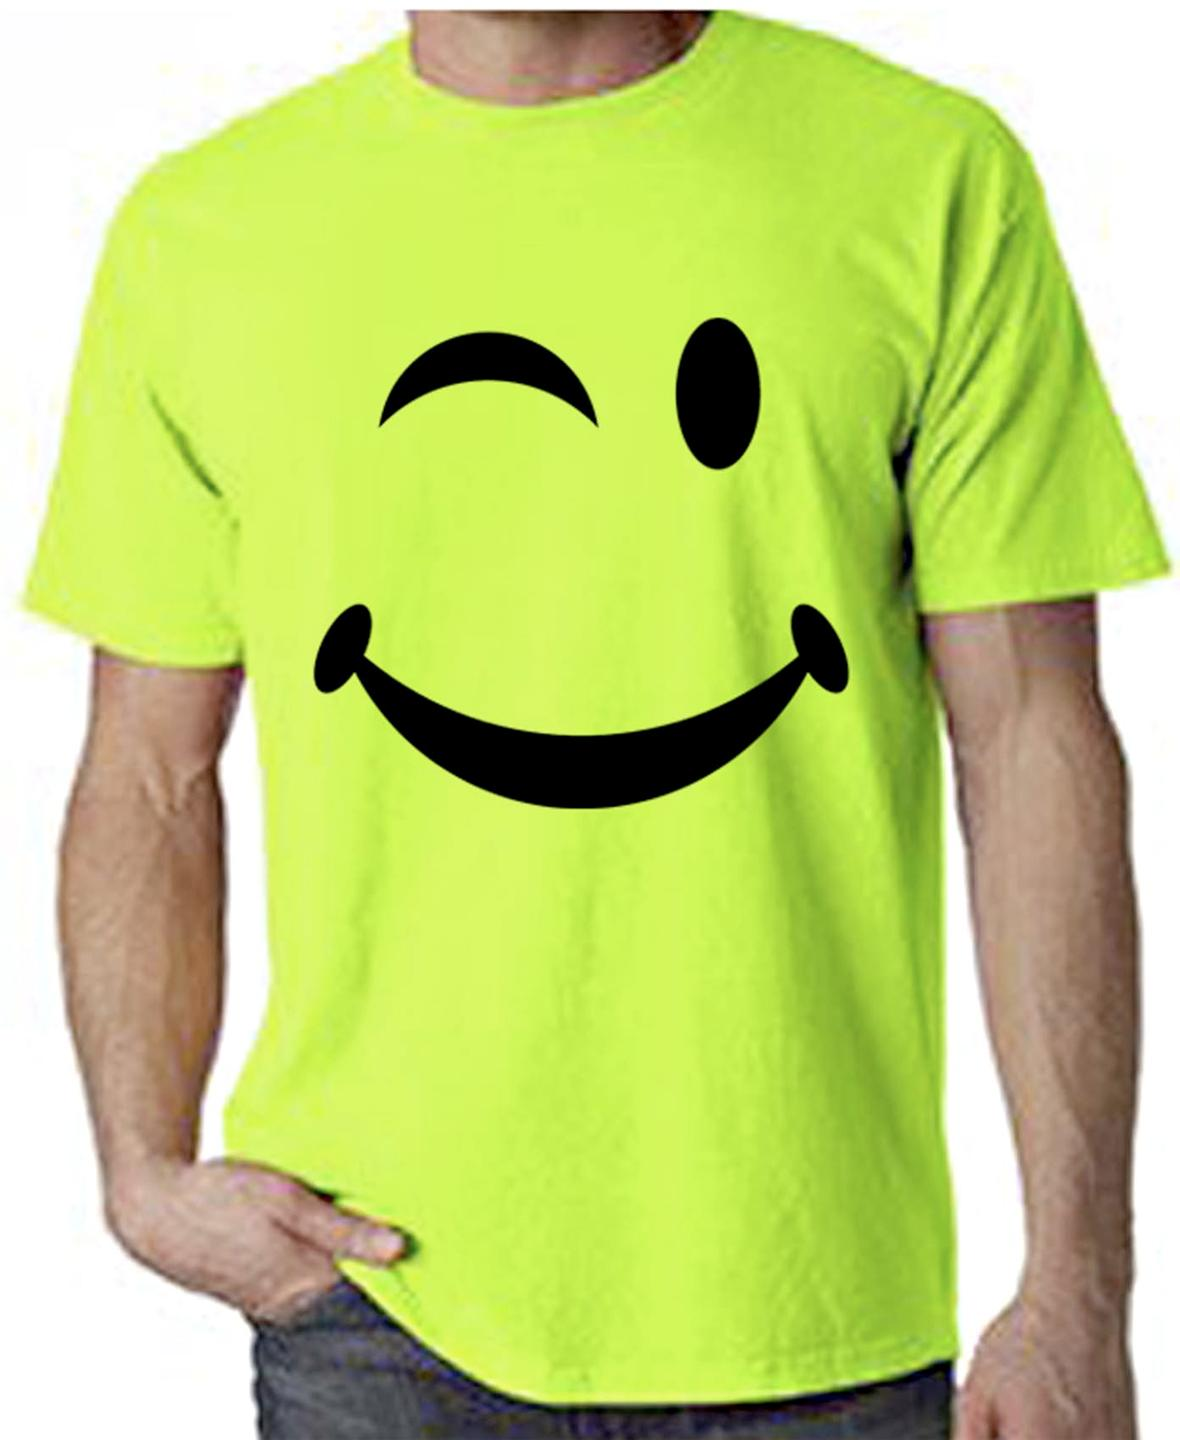 smiley face neon t shirt rave dub step drum n bass acid house ebay. Black Bedroom Furniture Sets. Home Design Ideas